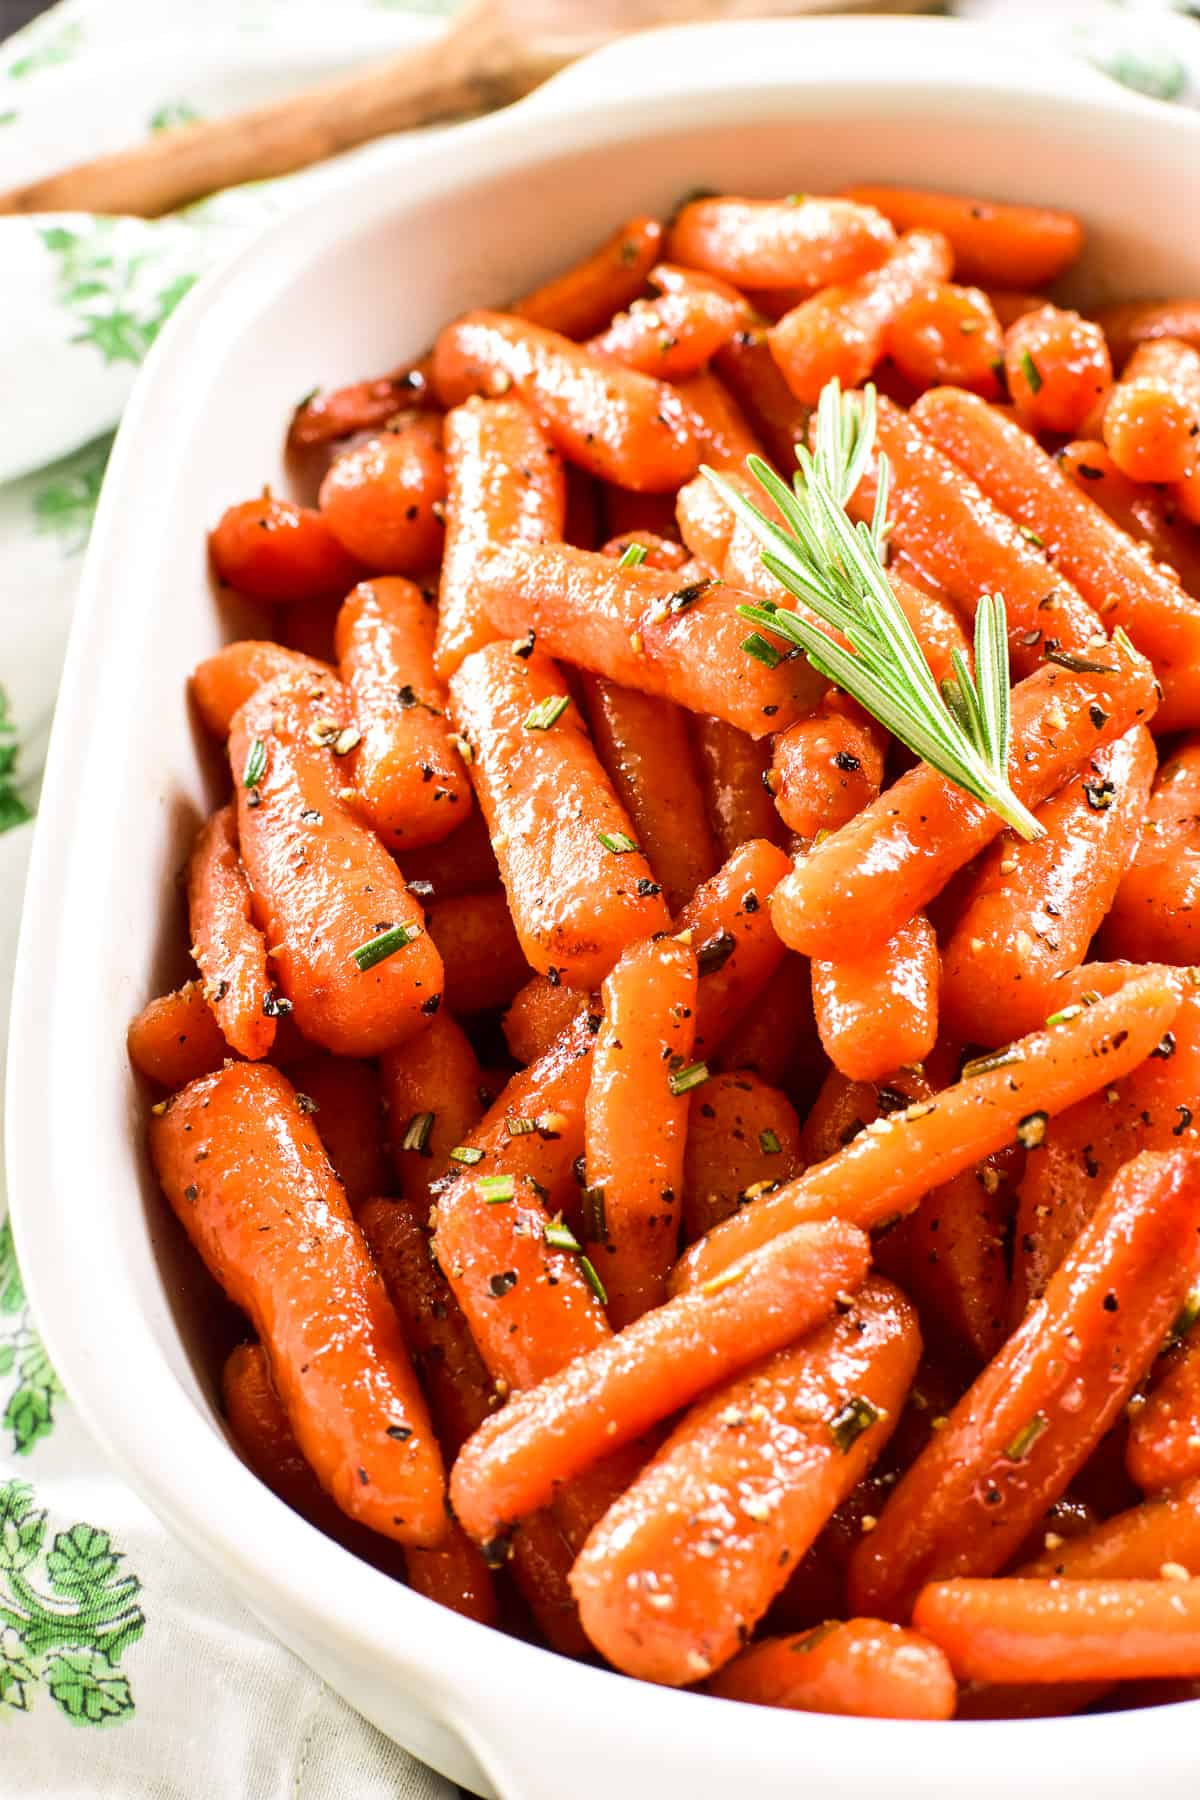 Finished shot of Honey Glazed Carrots in a white serving dish